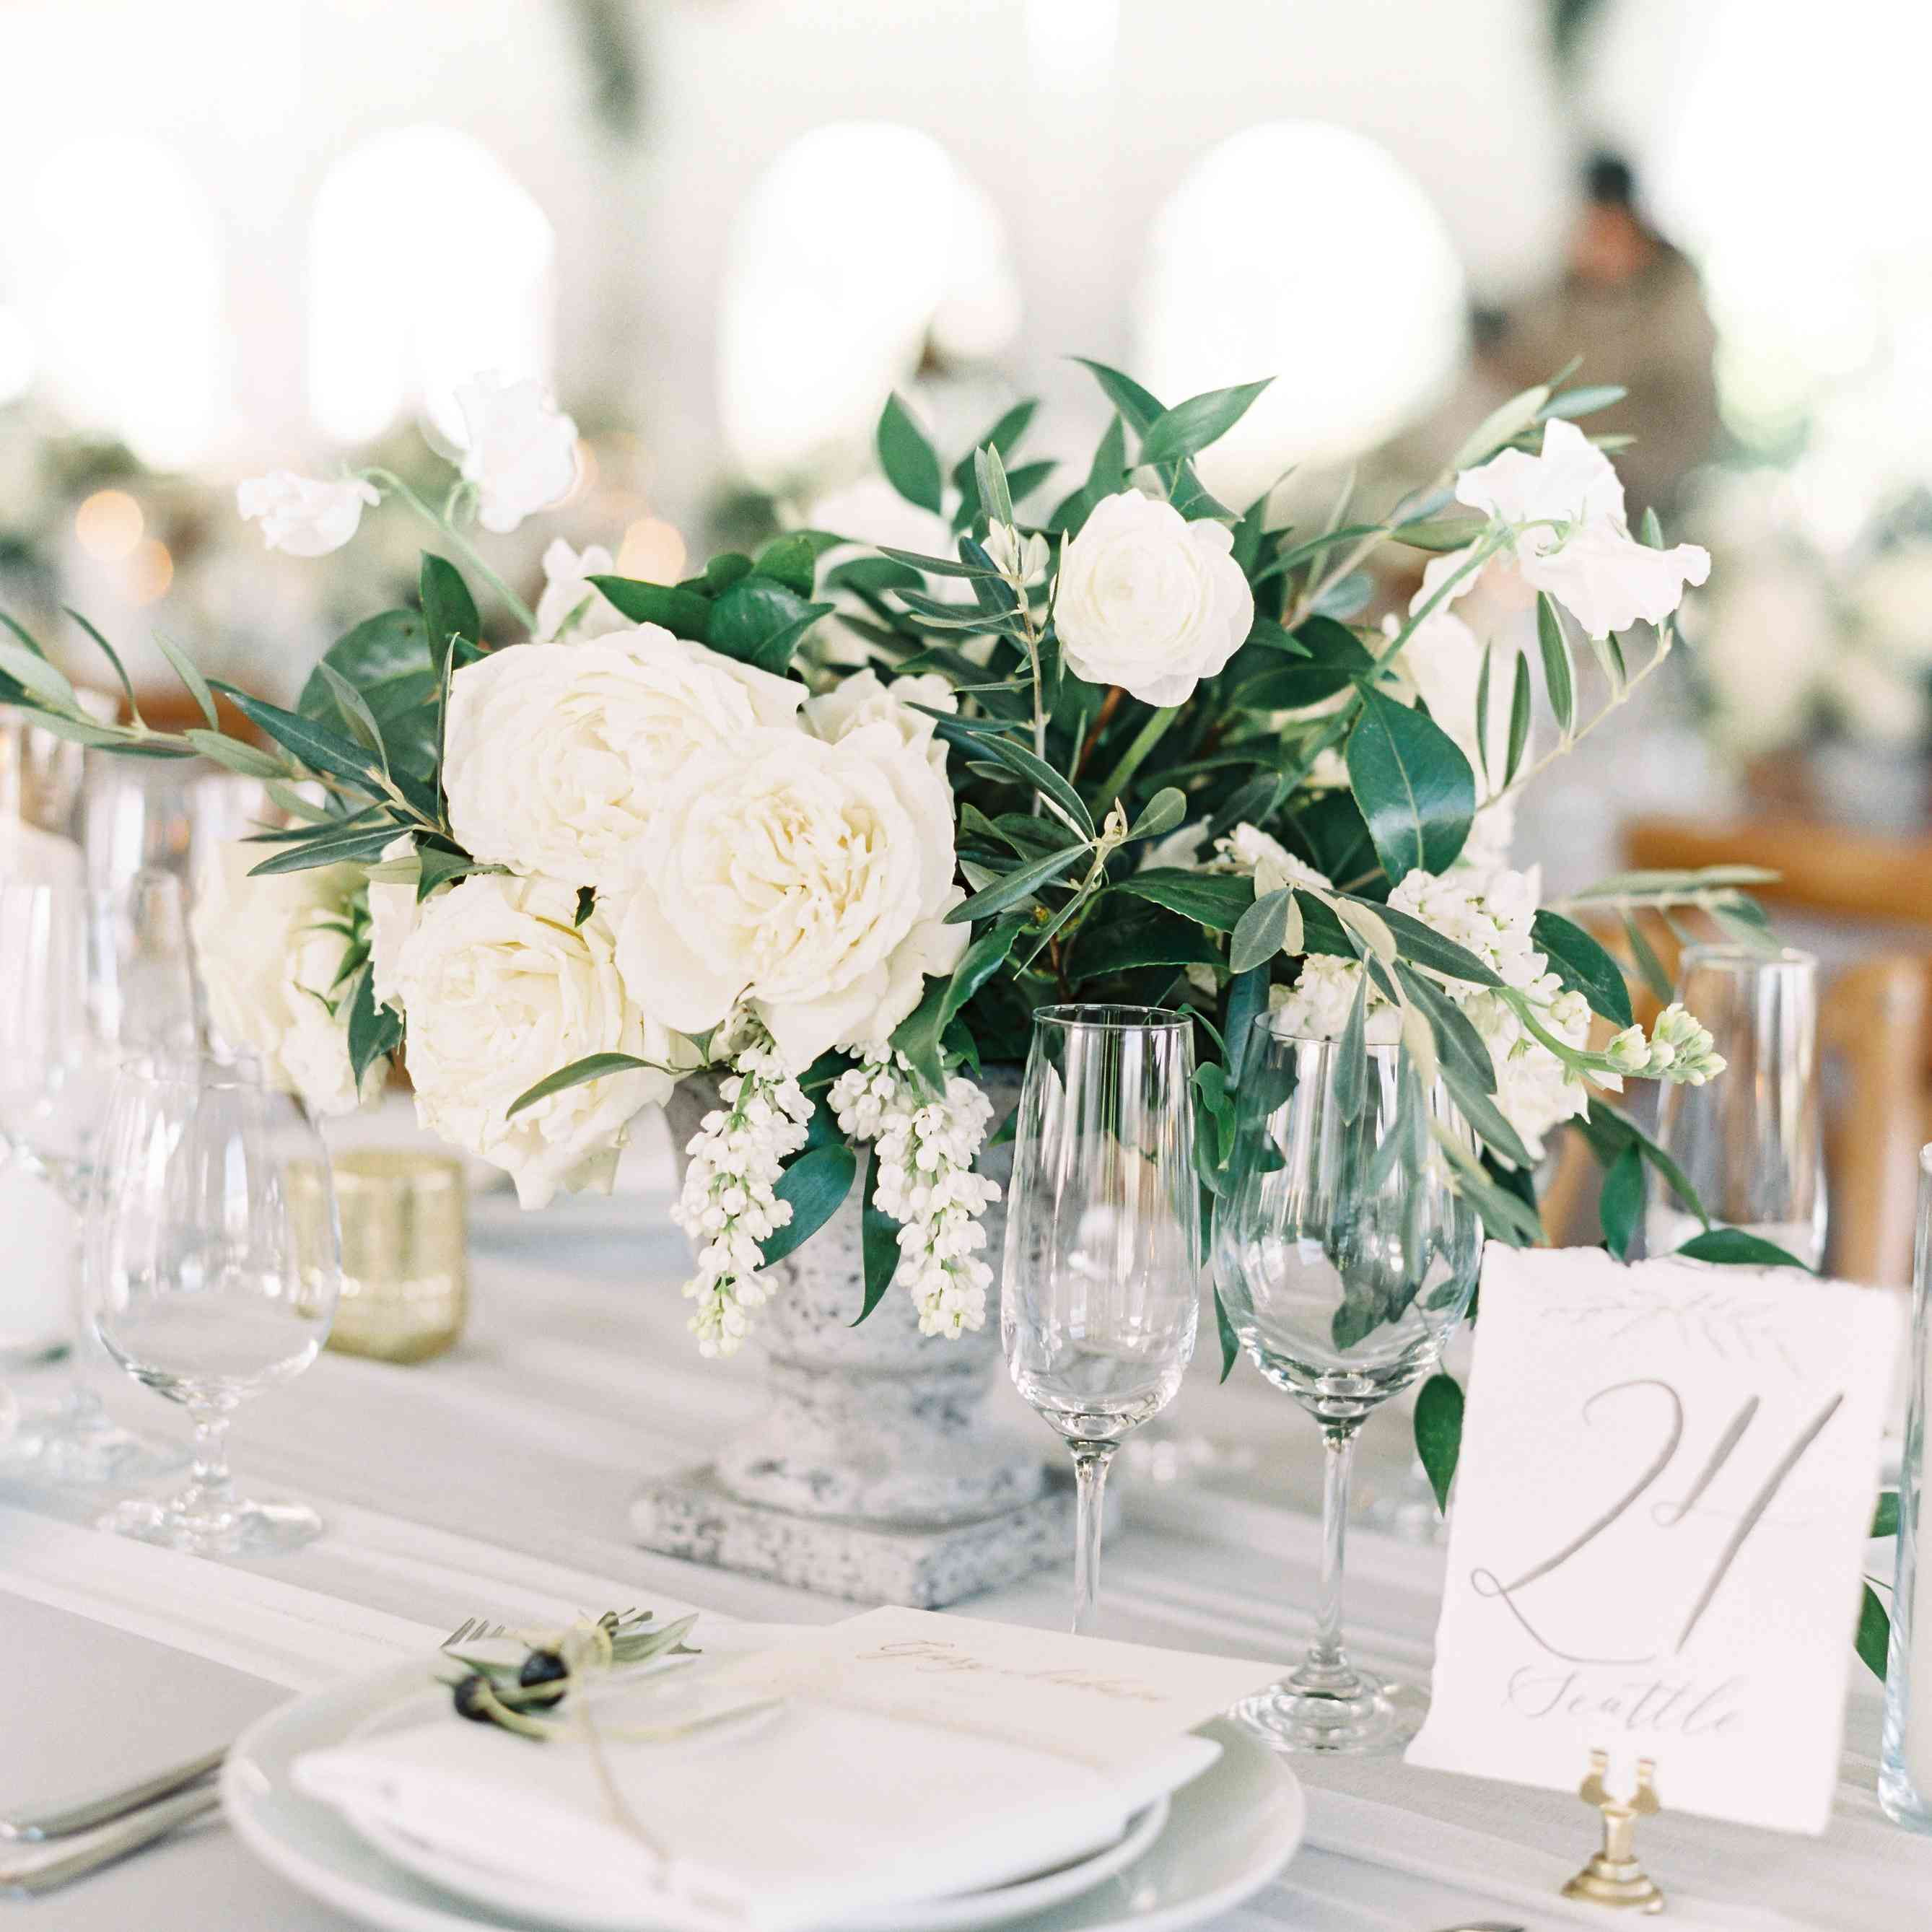 timeless place setting